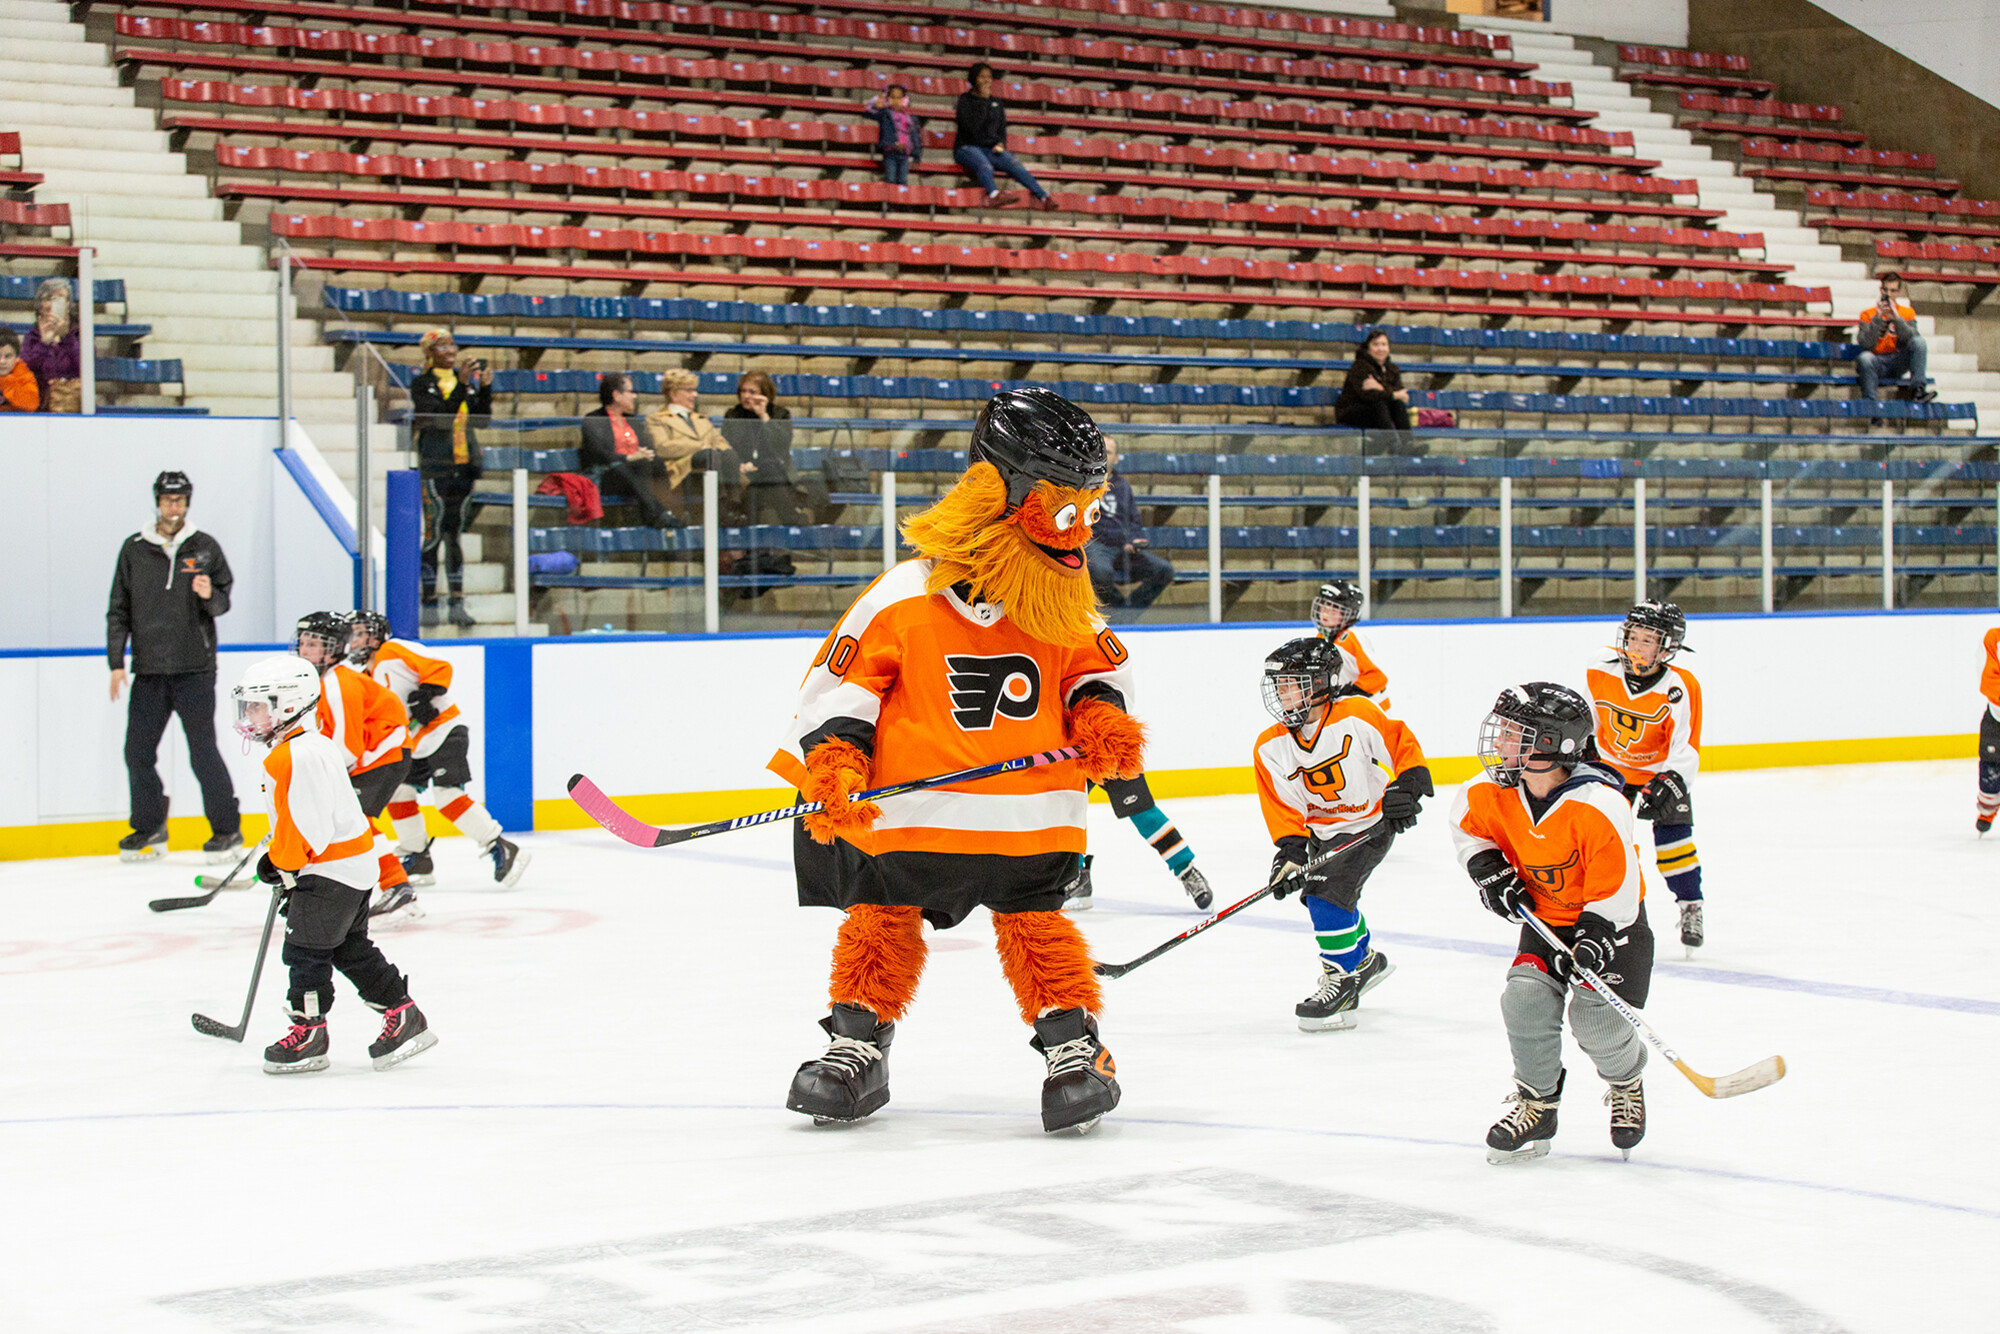 Gritty skating on the ice with members of a youth hockey league